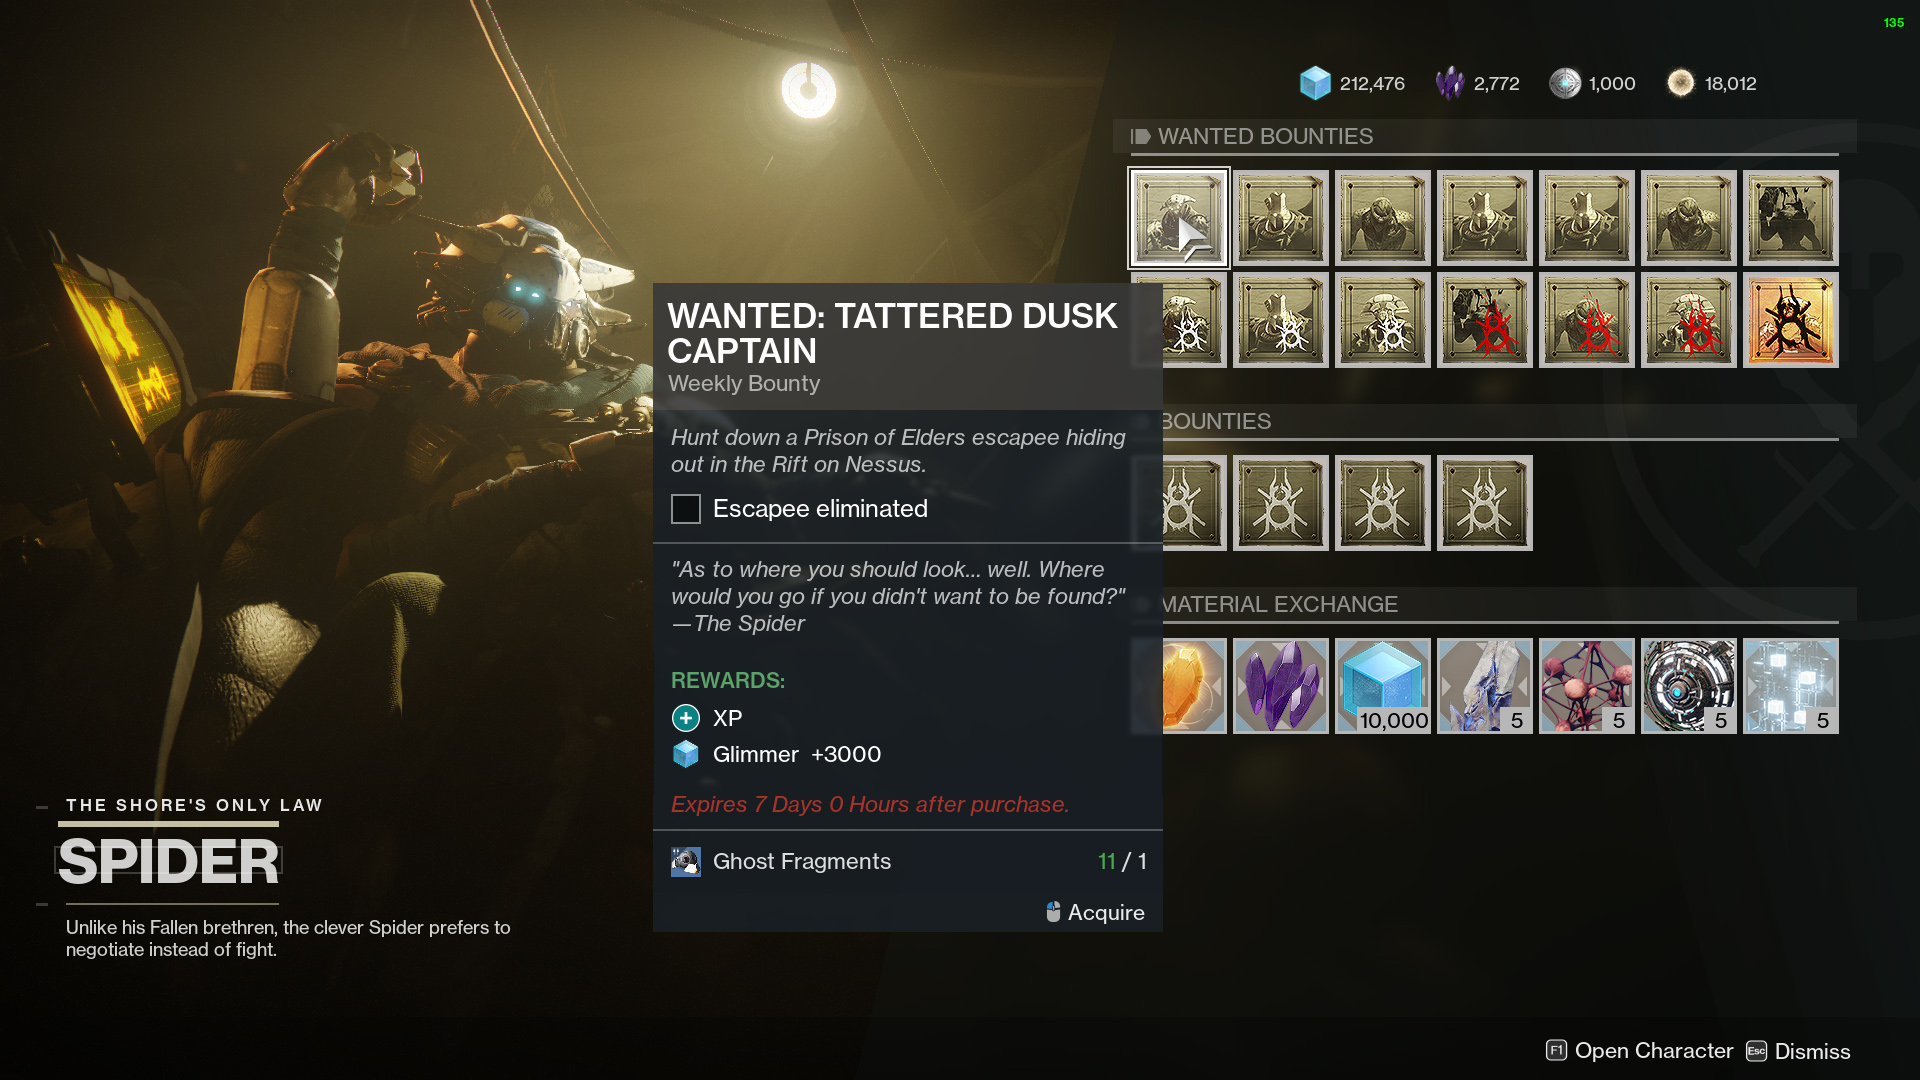 destiny 2 tattered dusk captain bounty